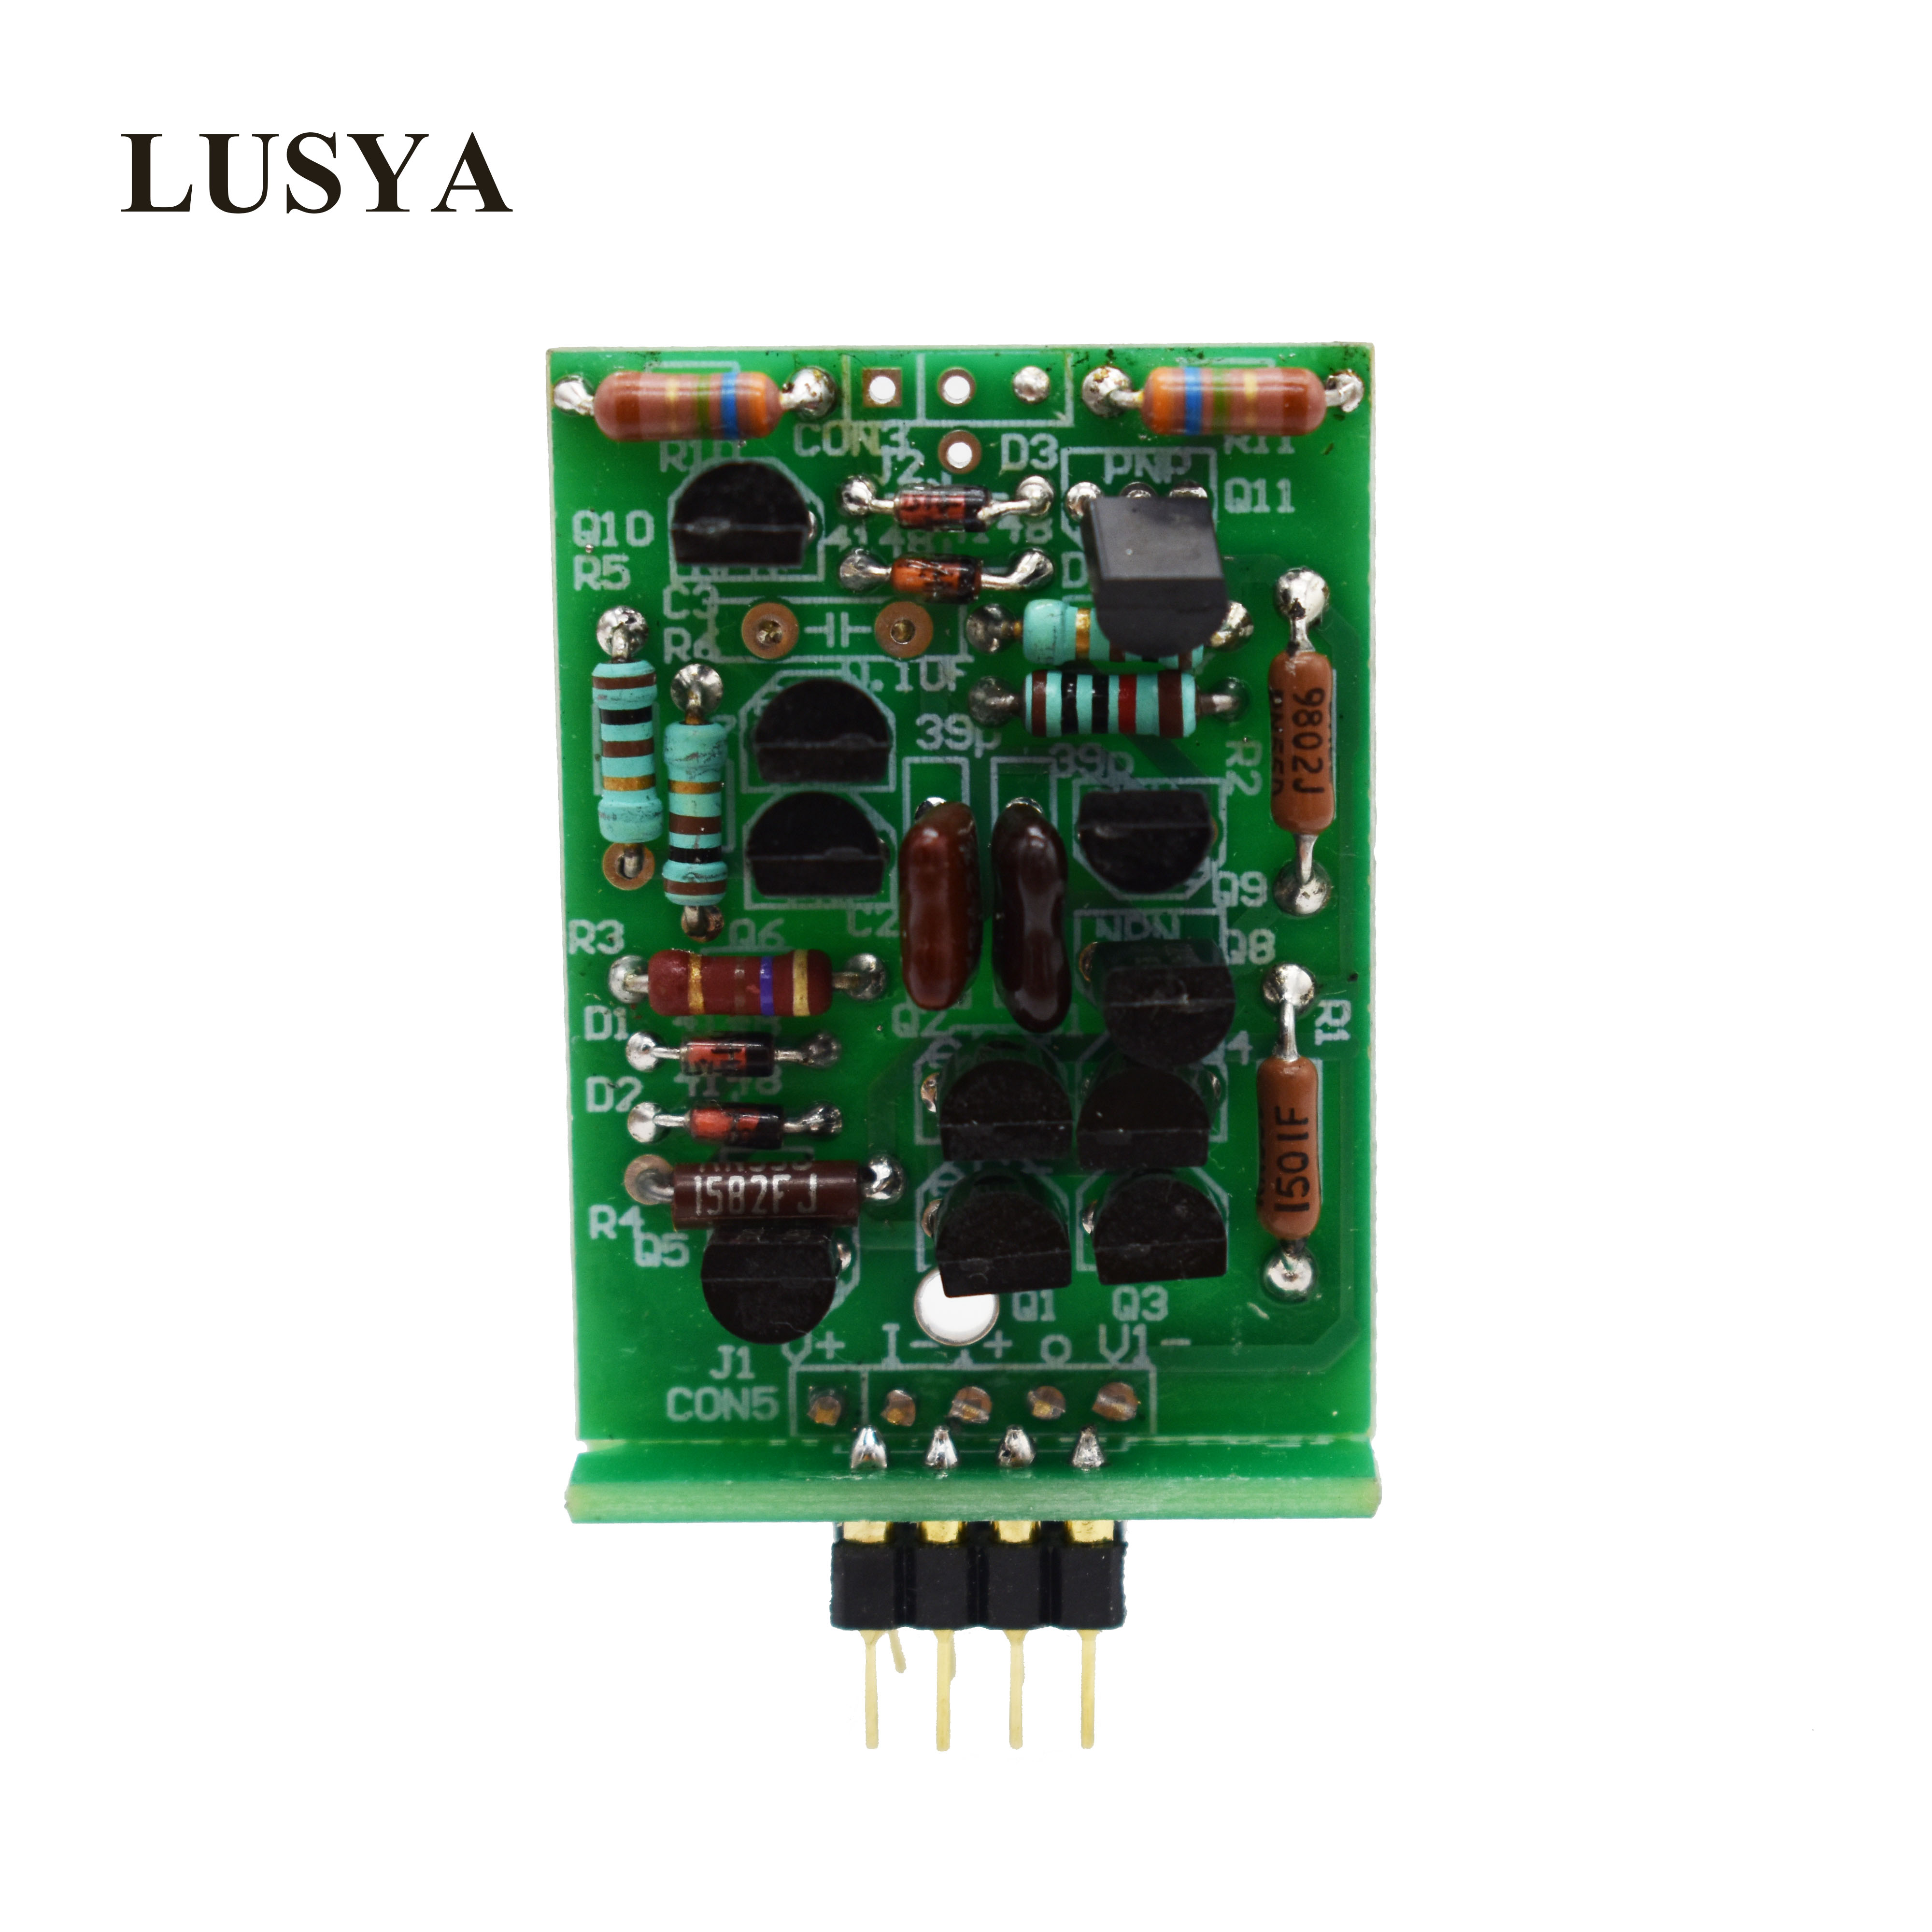 Lusya OP03 Field Effect Input Discrete Component High Current Output Single Op Amp Replacement Of NE5534, AD797 For DAC AmpT1196